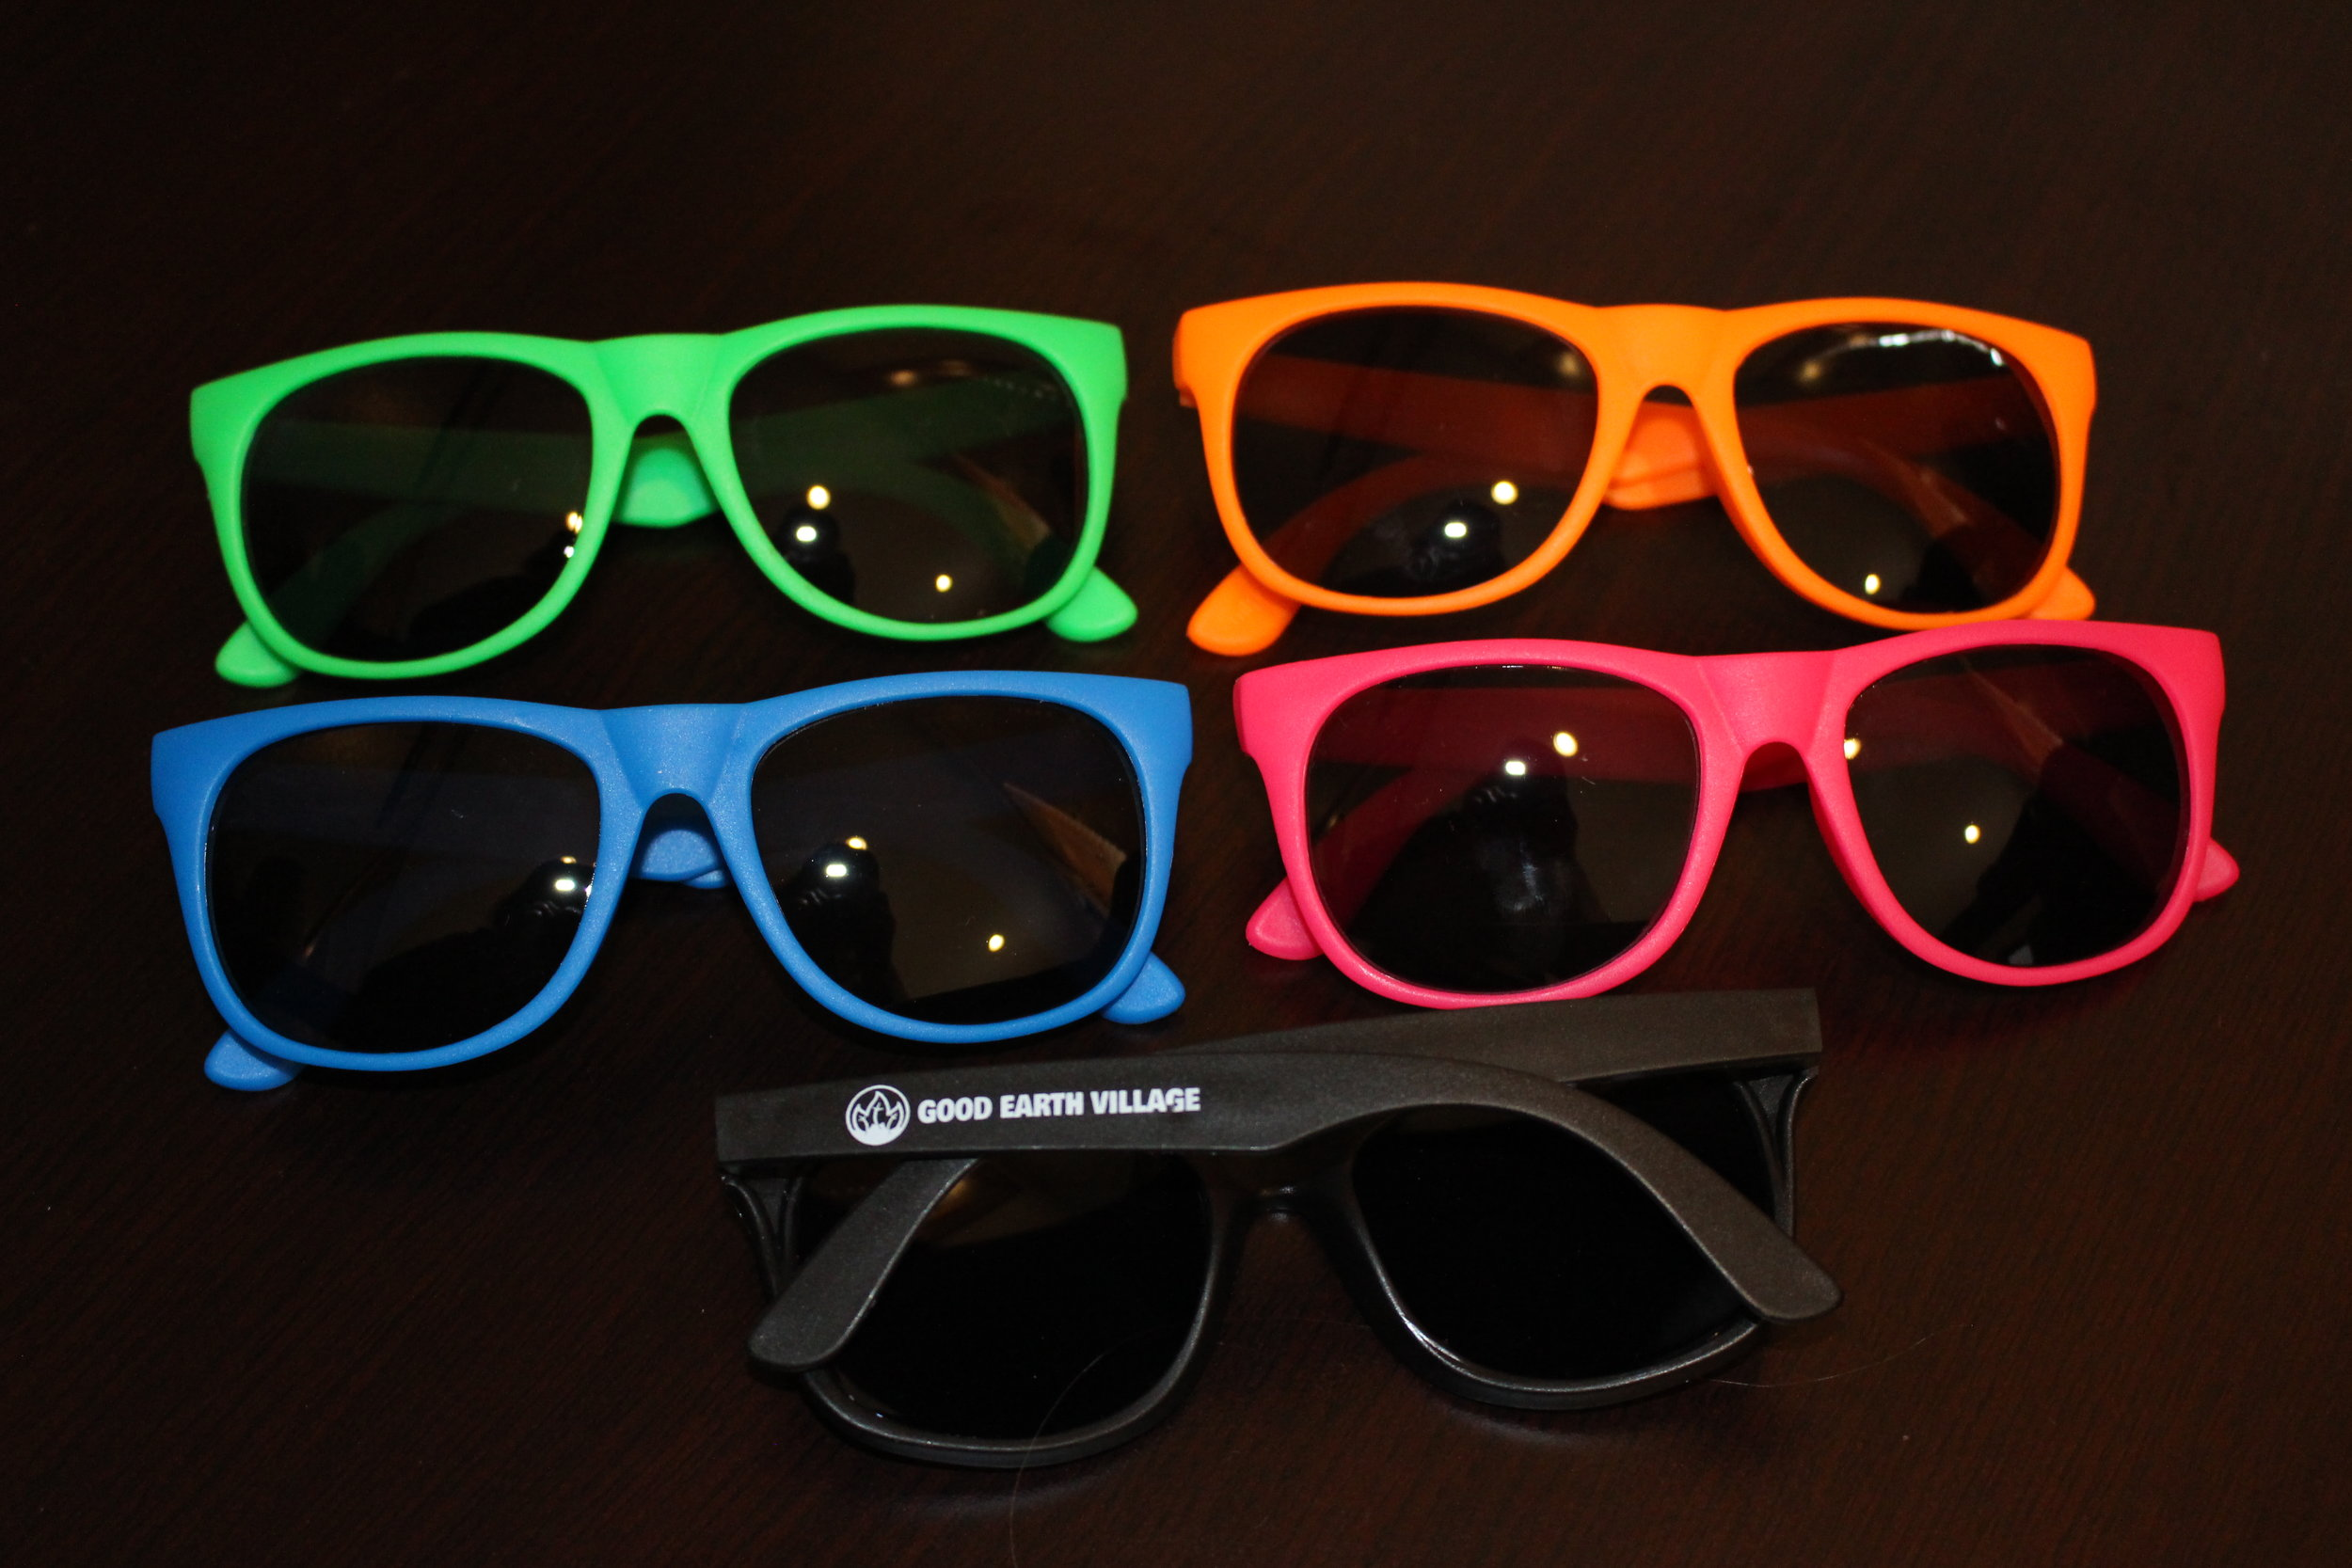 Item:  Rubberized Sunglasses  Colors:  Green, Orange, Blue, Pink, Black  Price:  $5